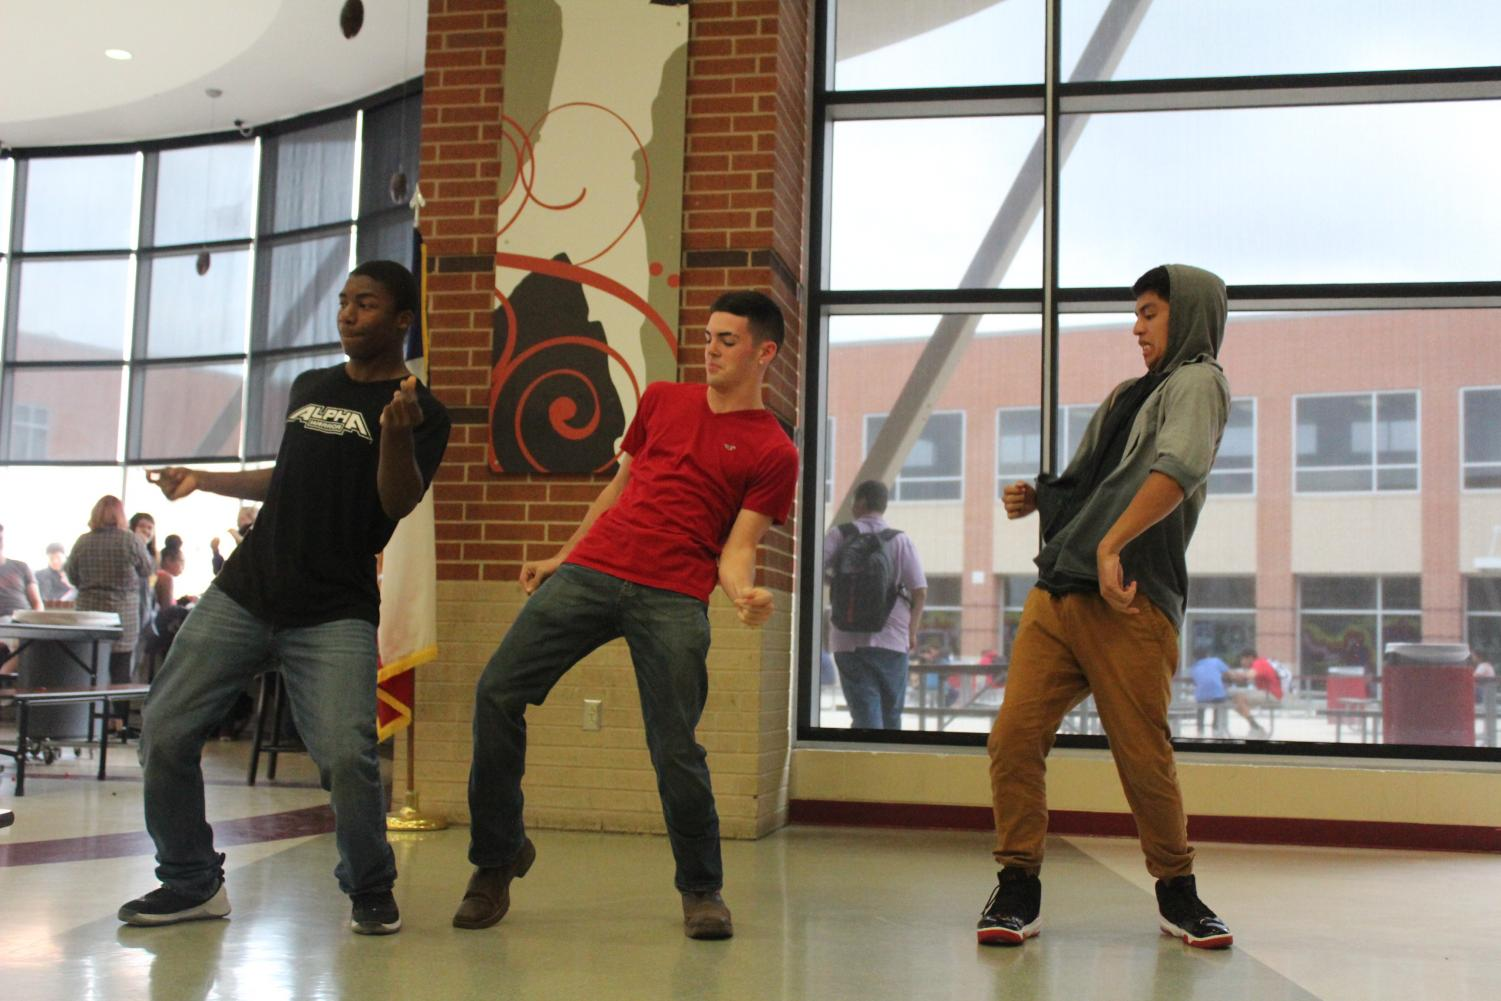 Rodriguez, along with his friends Isaiah Dugar and Hunter Erwin, randomly dance in the cafeteria. All three of them have shown a love for dancing, no matter where they are at.